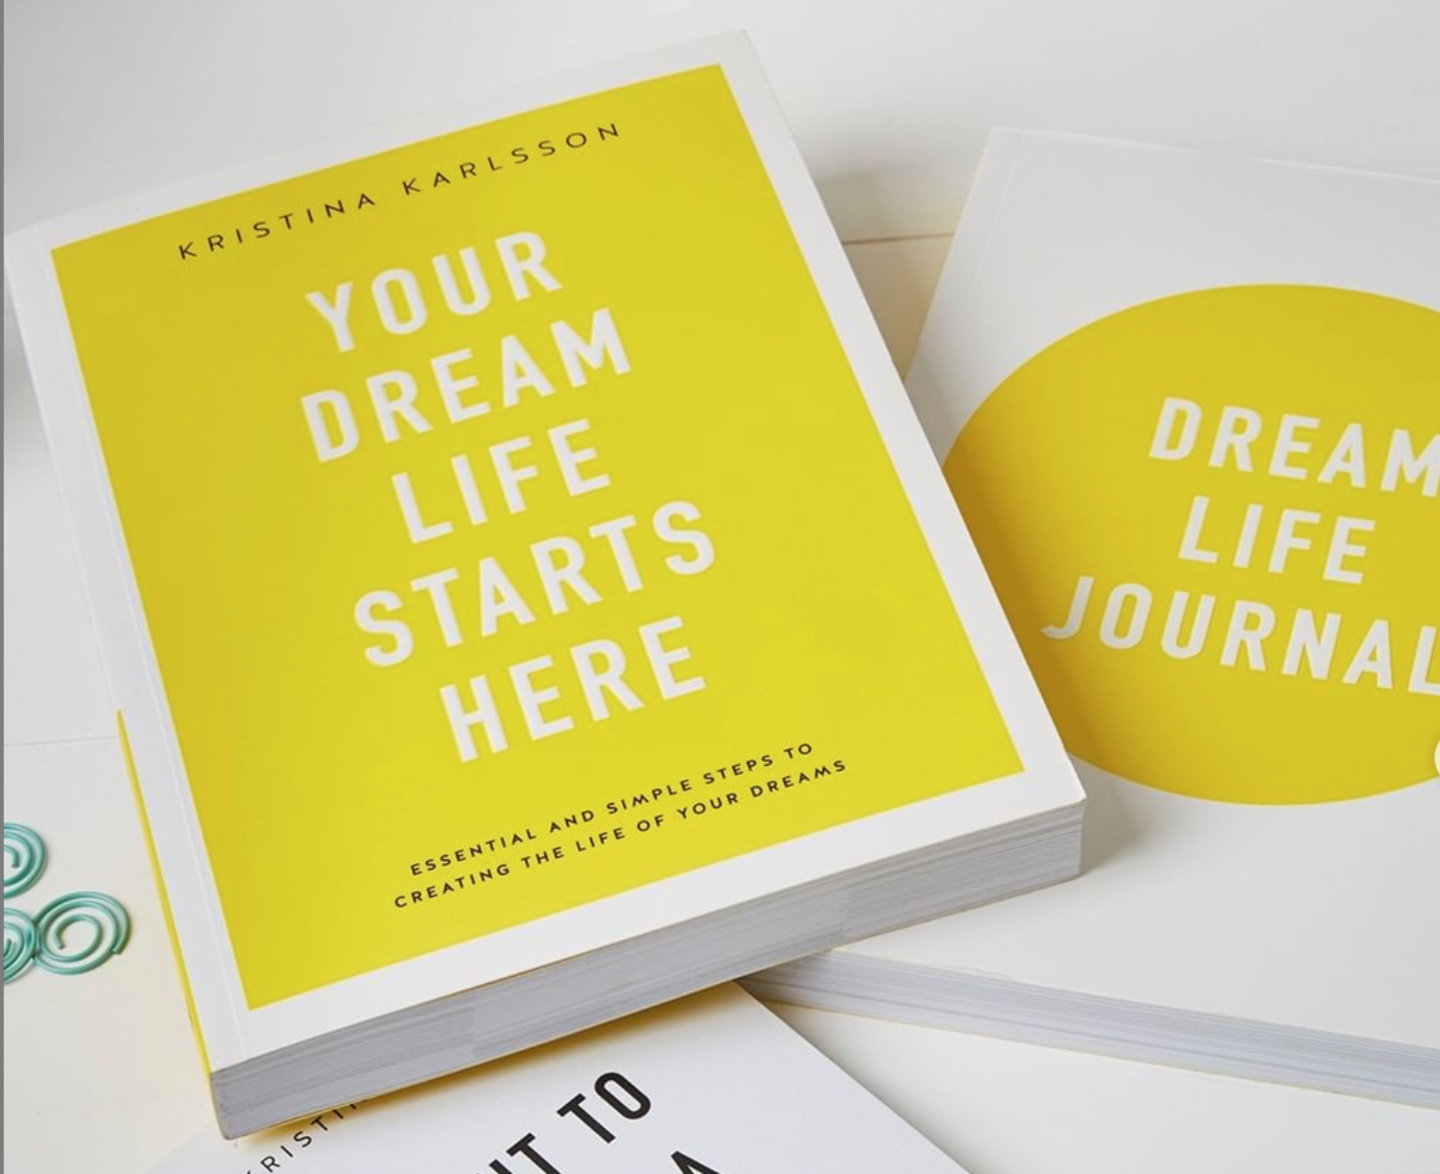 Above:Kristina Karlsson's book is part of her personal mission to inspire 101 million people to live their dream life.